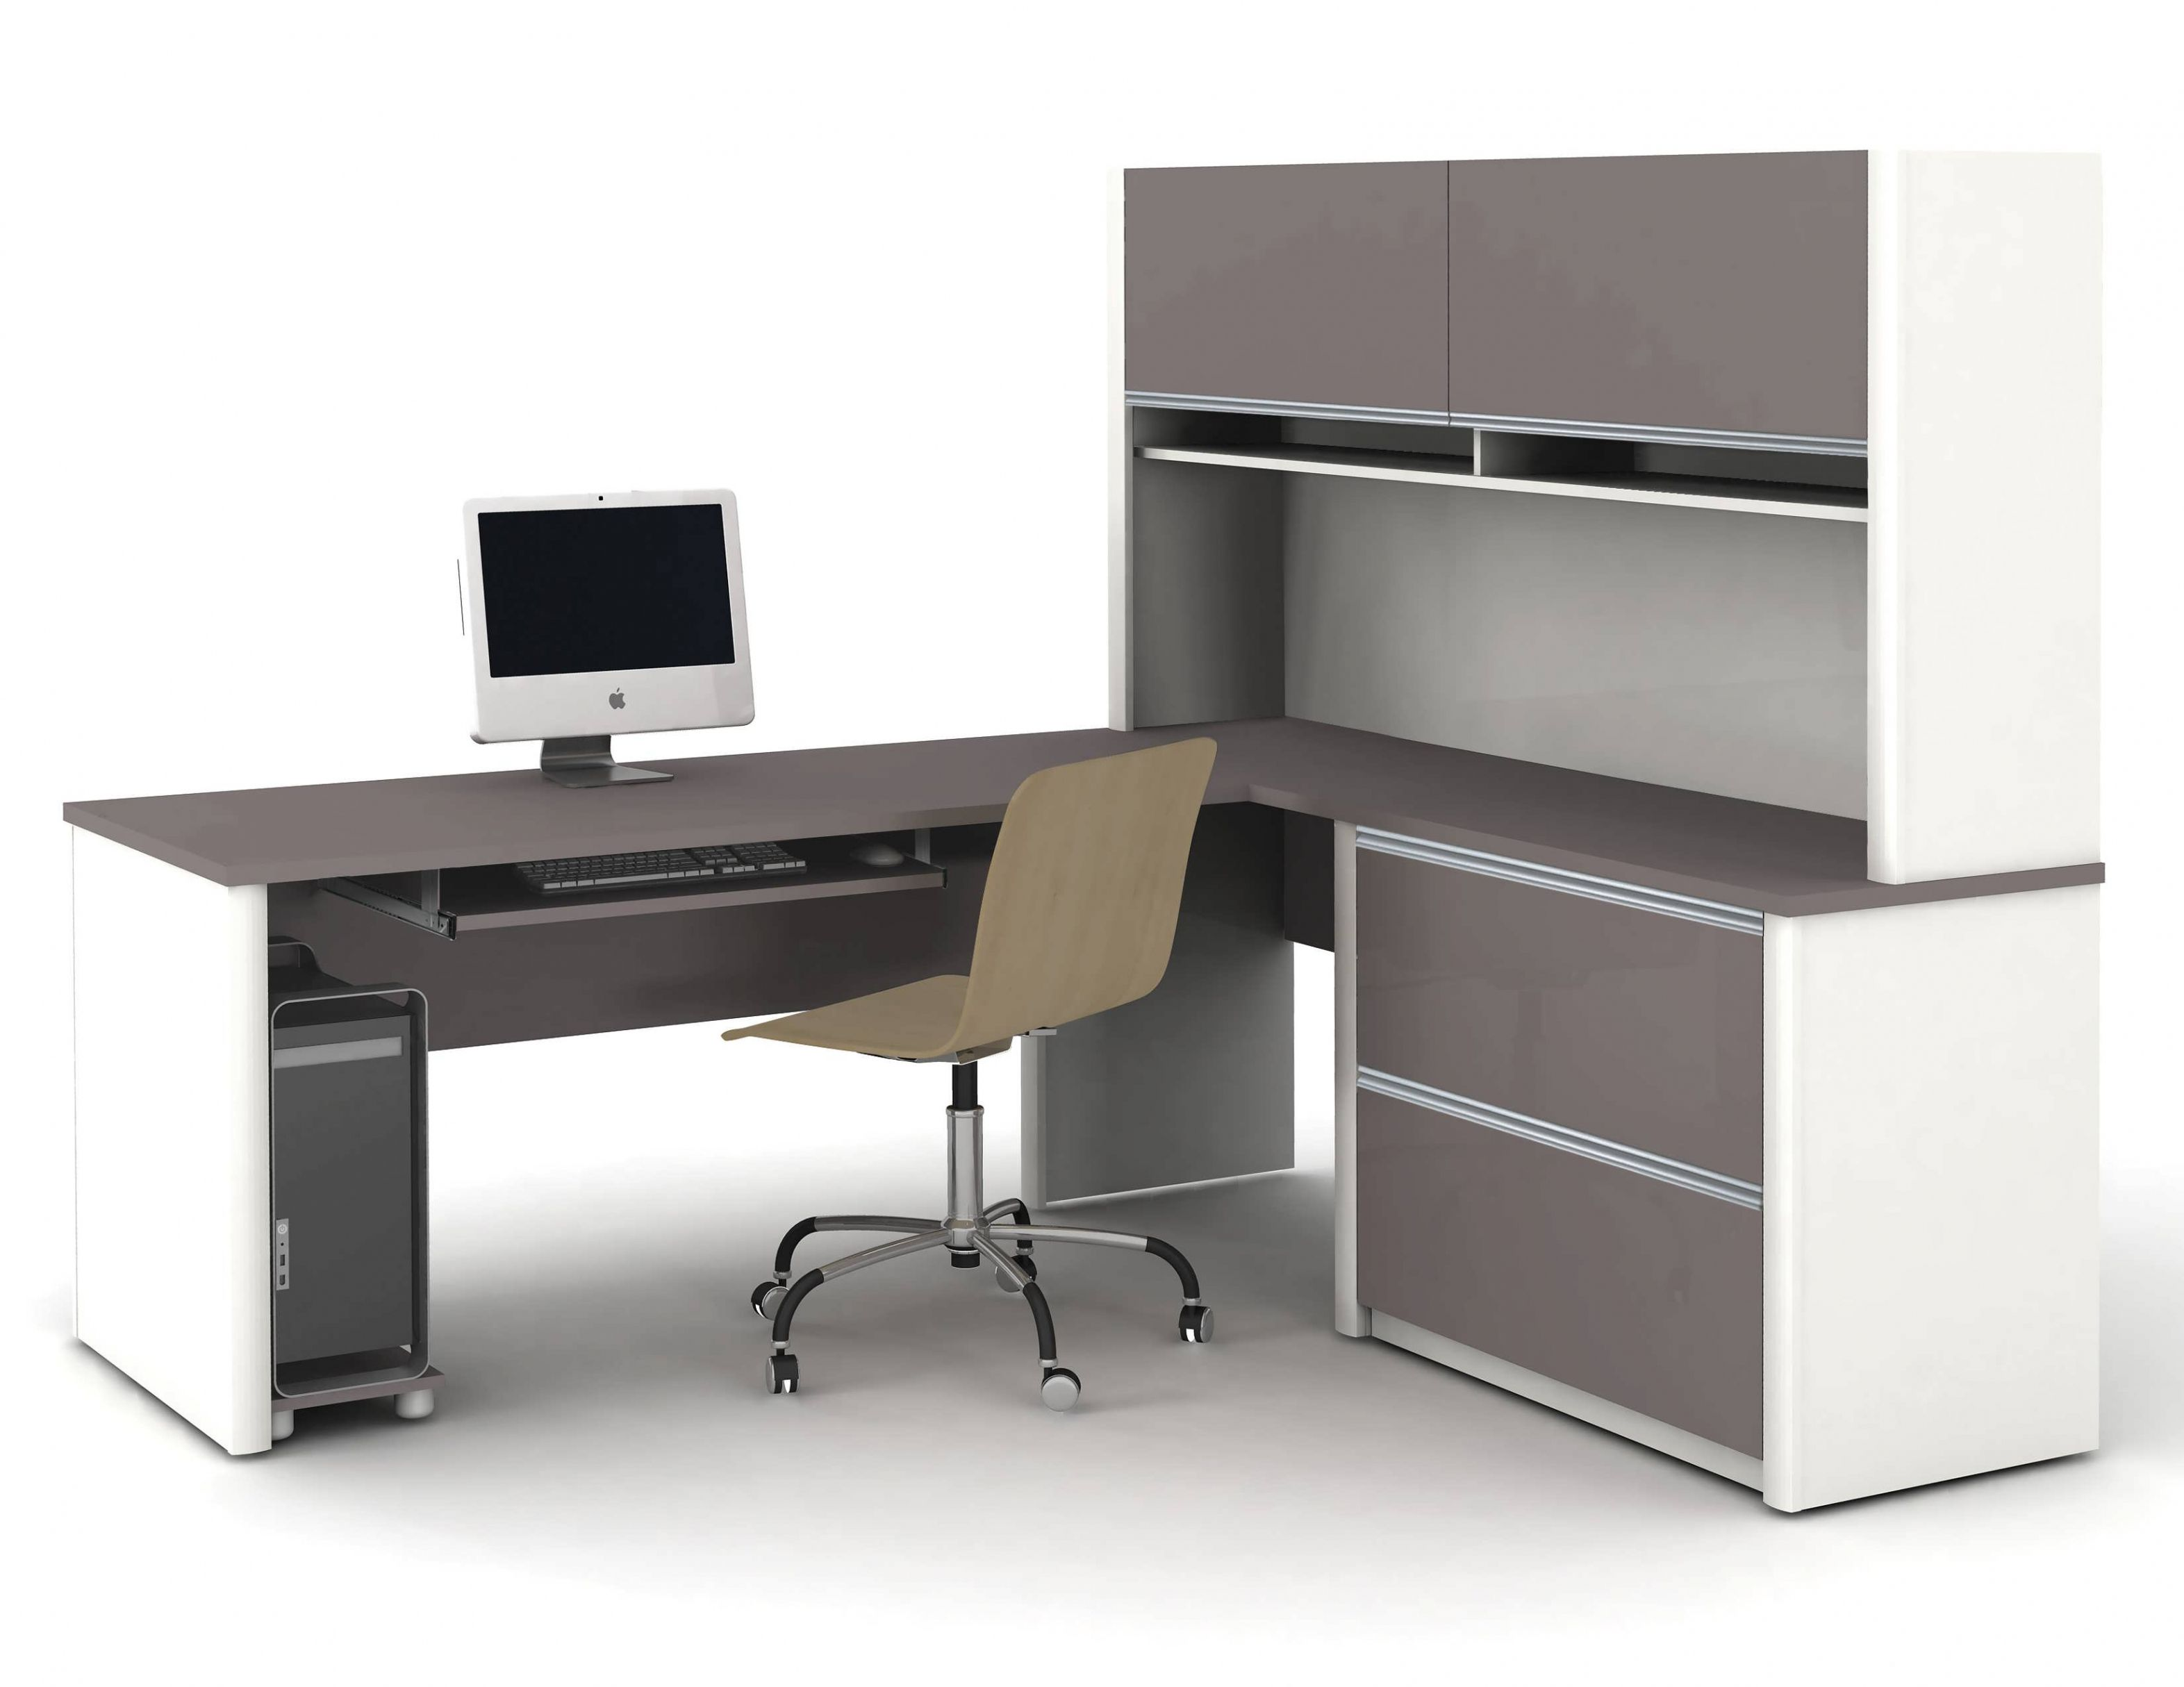 organizer in can white corner workplace cheap full of table uk computer desk student hutch your small office glass bedroom size you nz that for apply with ikea